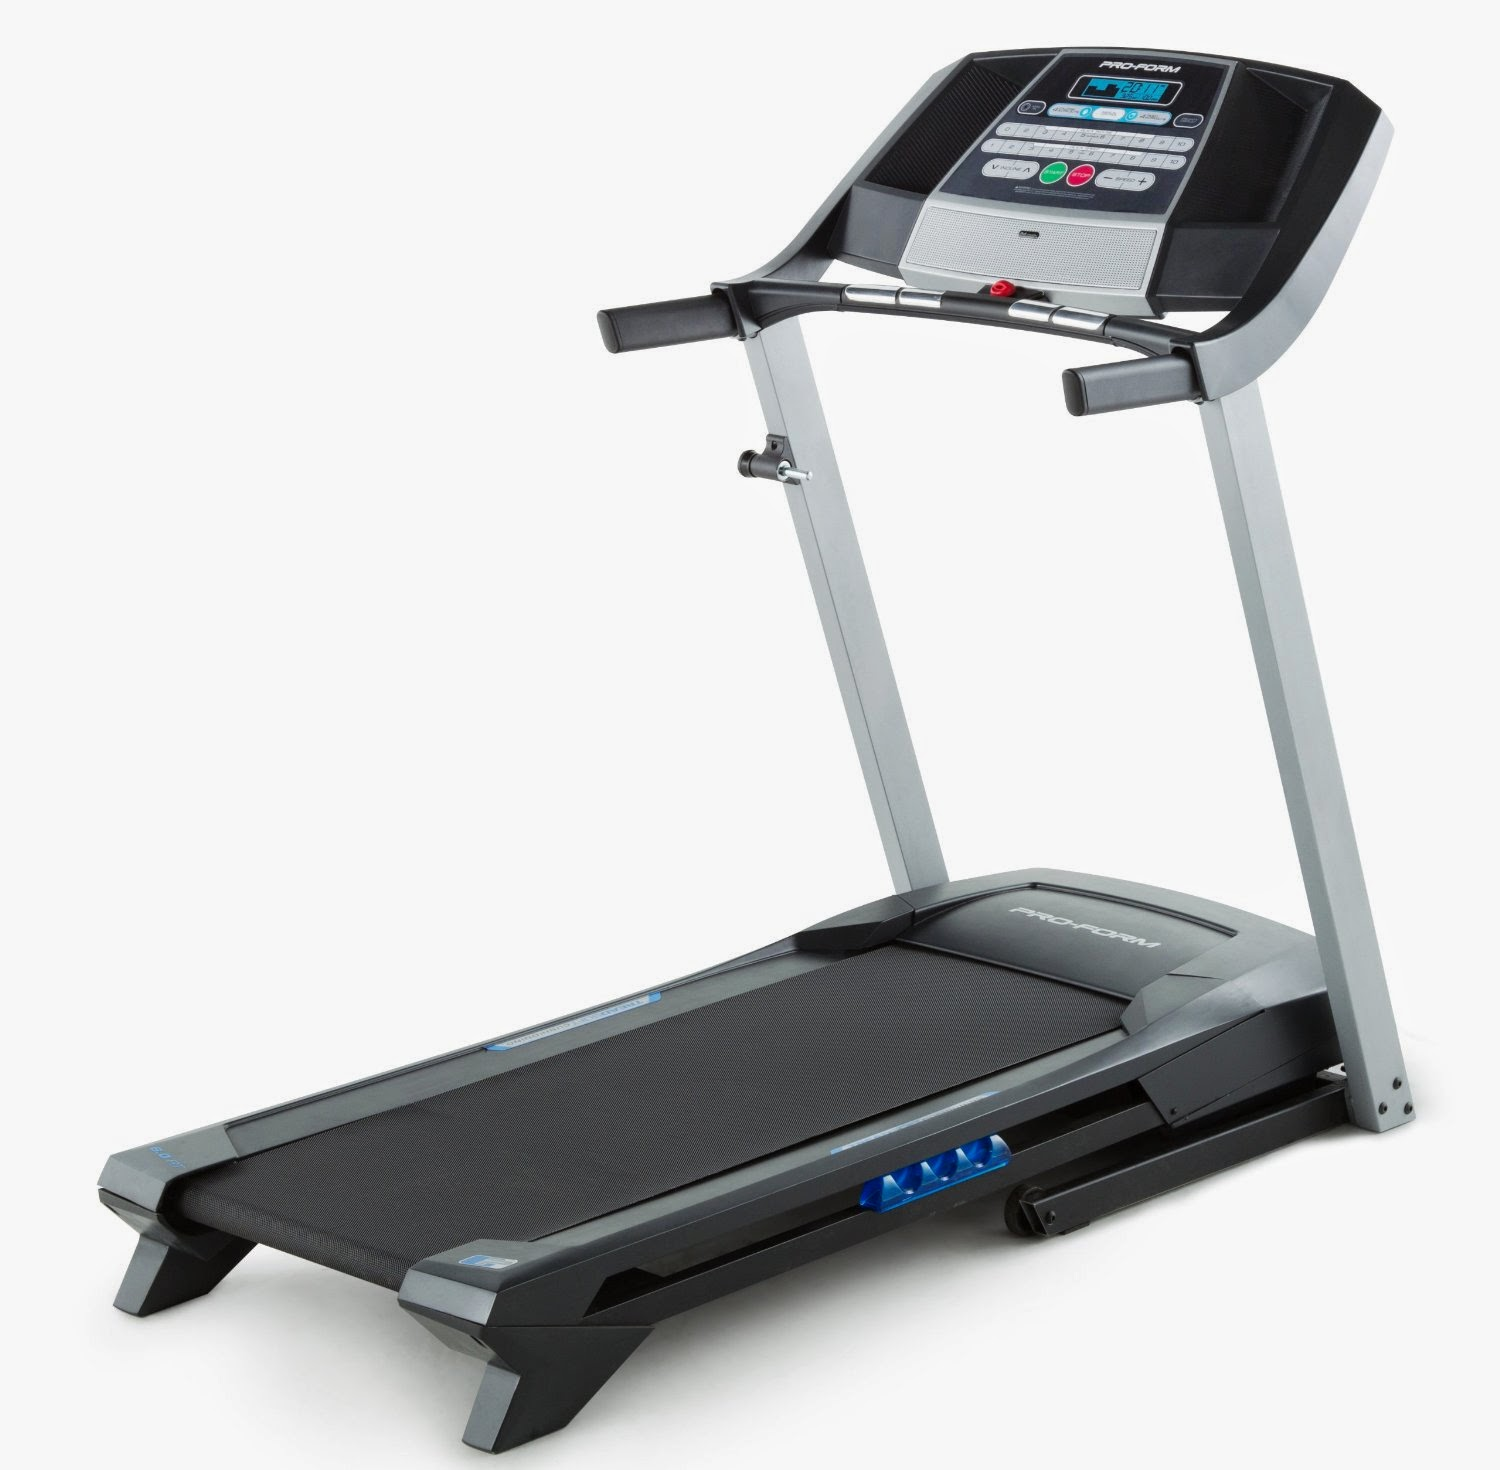 hi folks, my treadmill has been in storage for a few months, i took it out for use & found it stops about a second after the motor starts turning (with no load on belt) the problem is intermittant in.